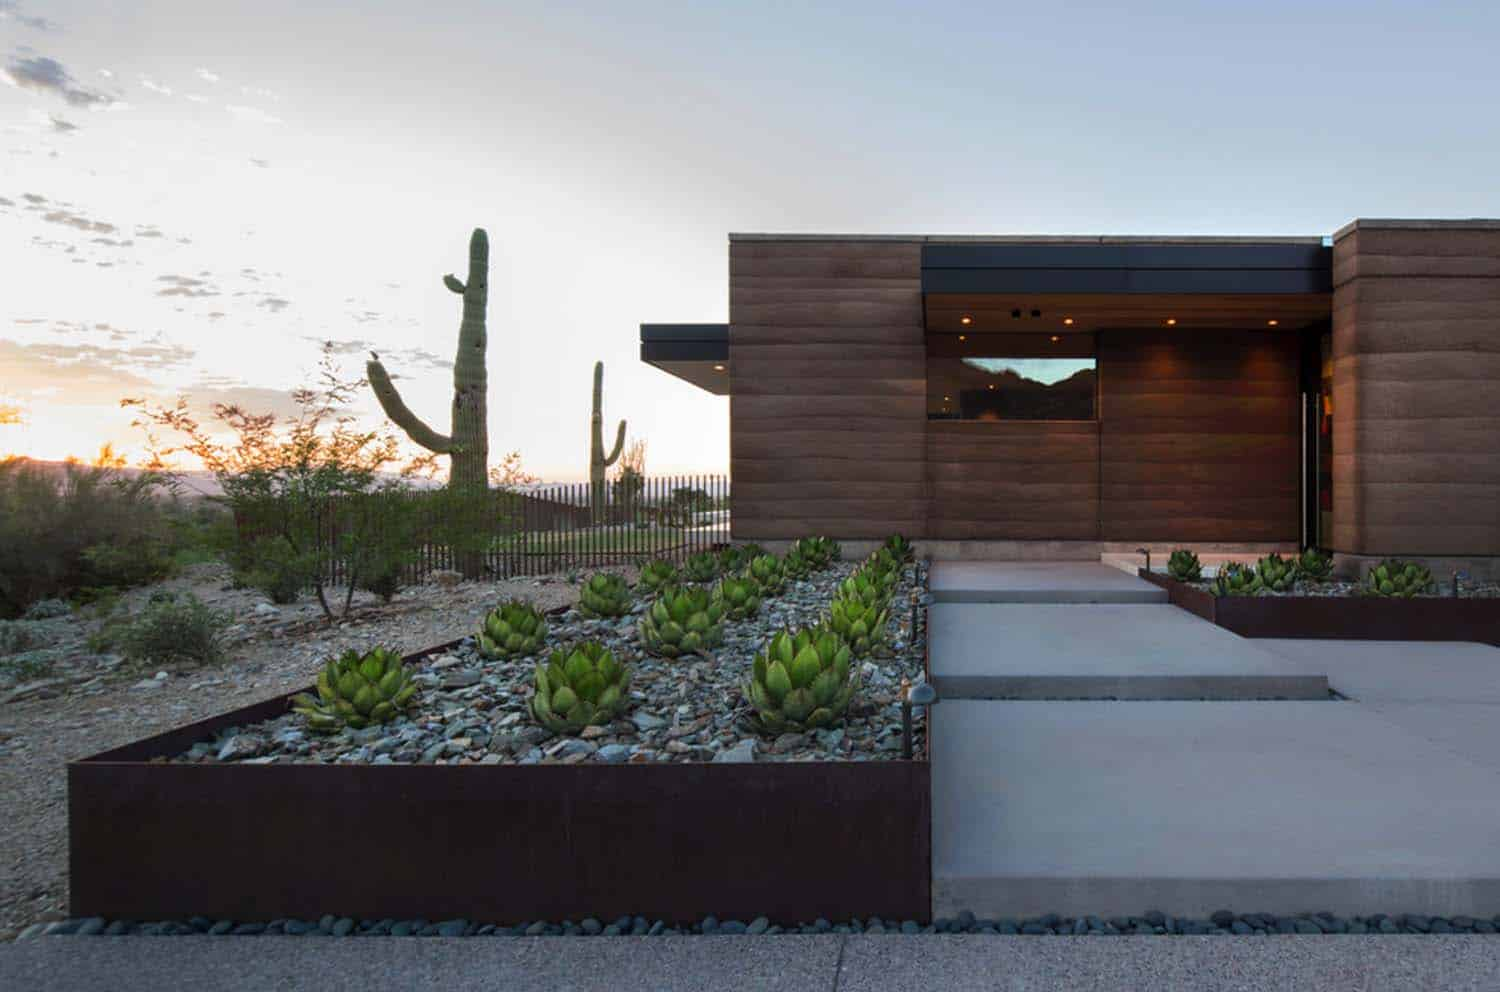 fascinating rammed earth home piercing the deserts of arizona. Black Bedroom Furniture Sets. Home Design Ideas